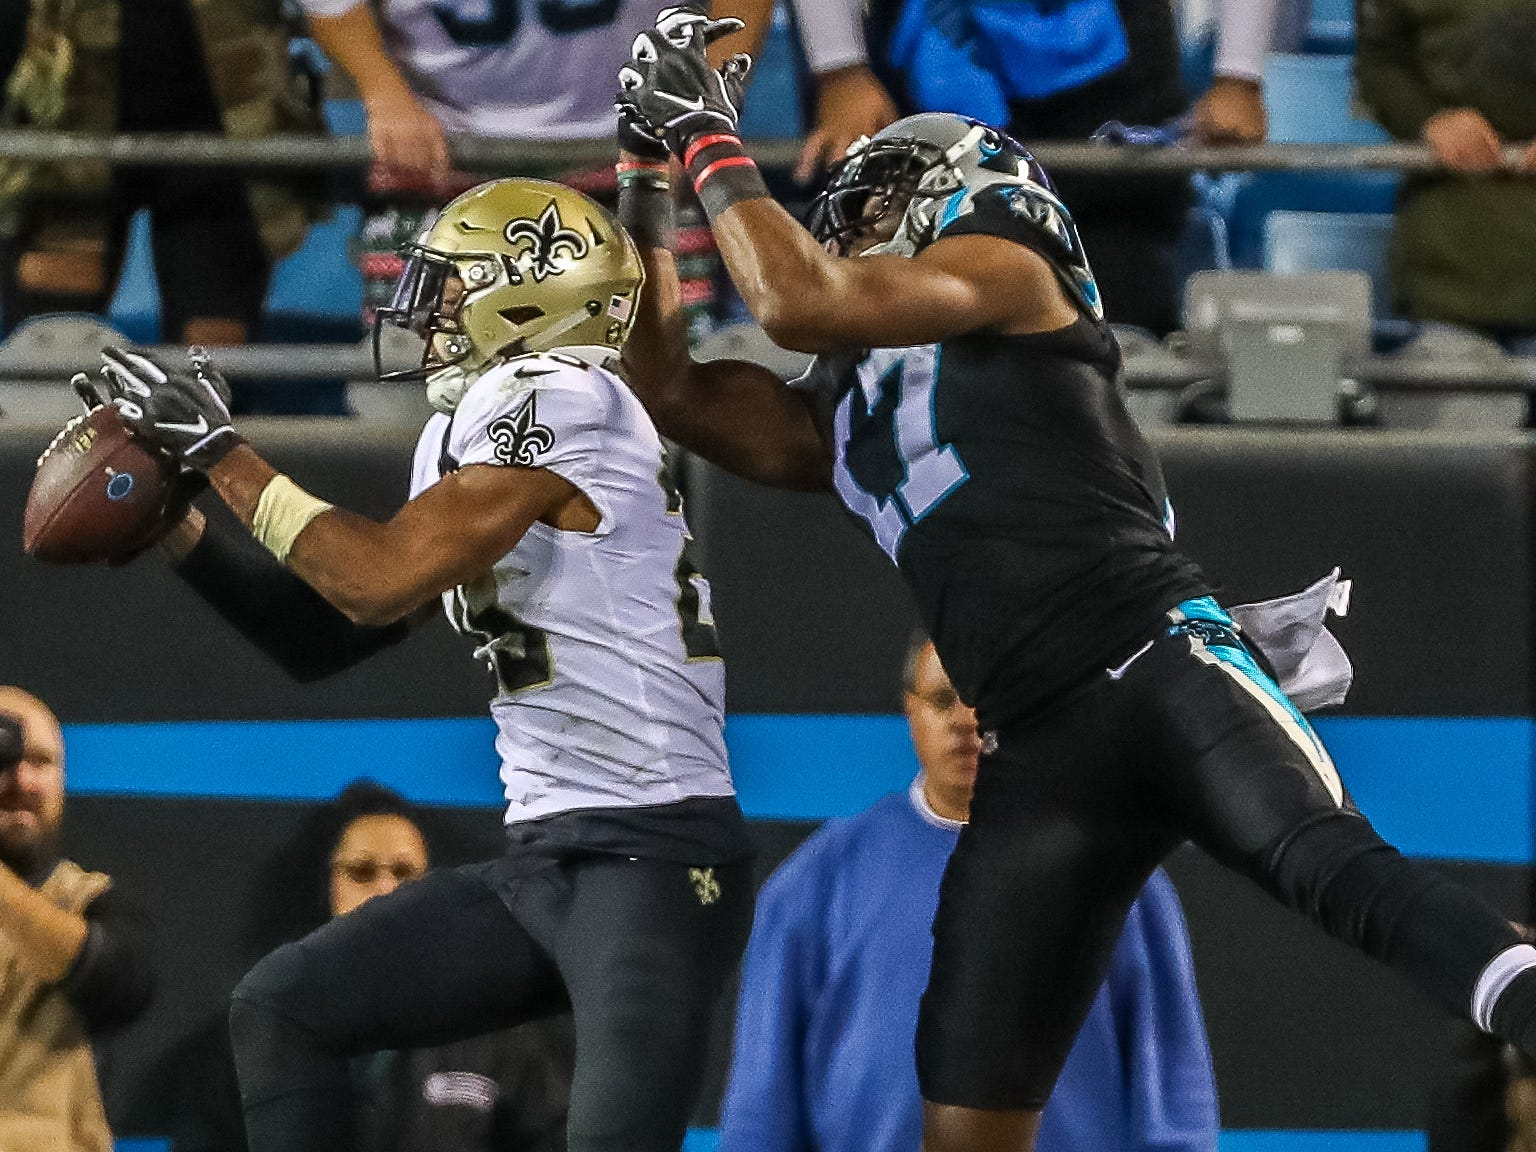 New Orleans Saints cornerback Eli Apple intercepts a ball in the end zone in front of Carolina Panthers wide receiver Devin Funchess during the second quarter at Bank of America Stadium.